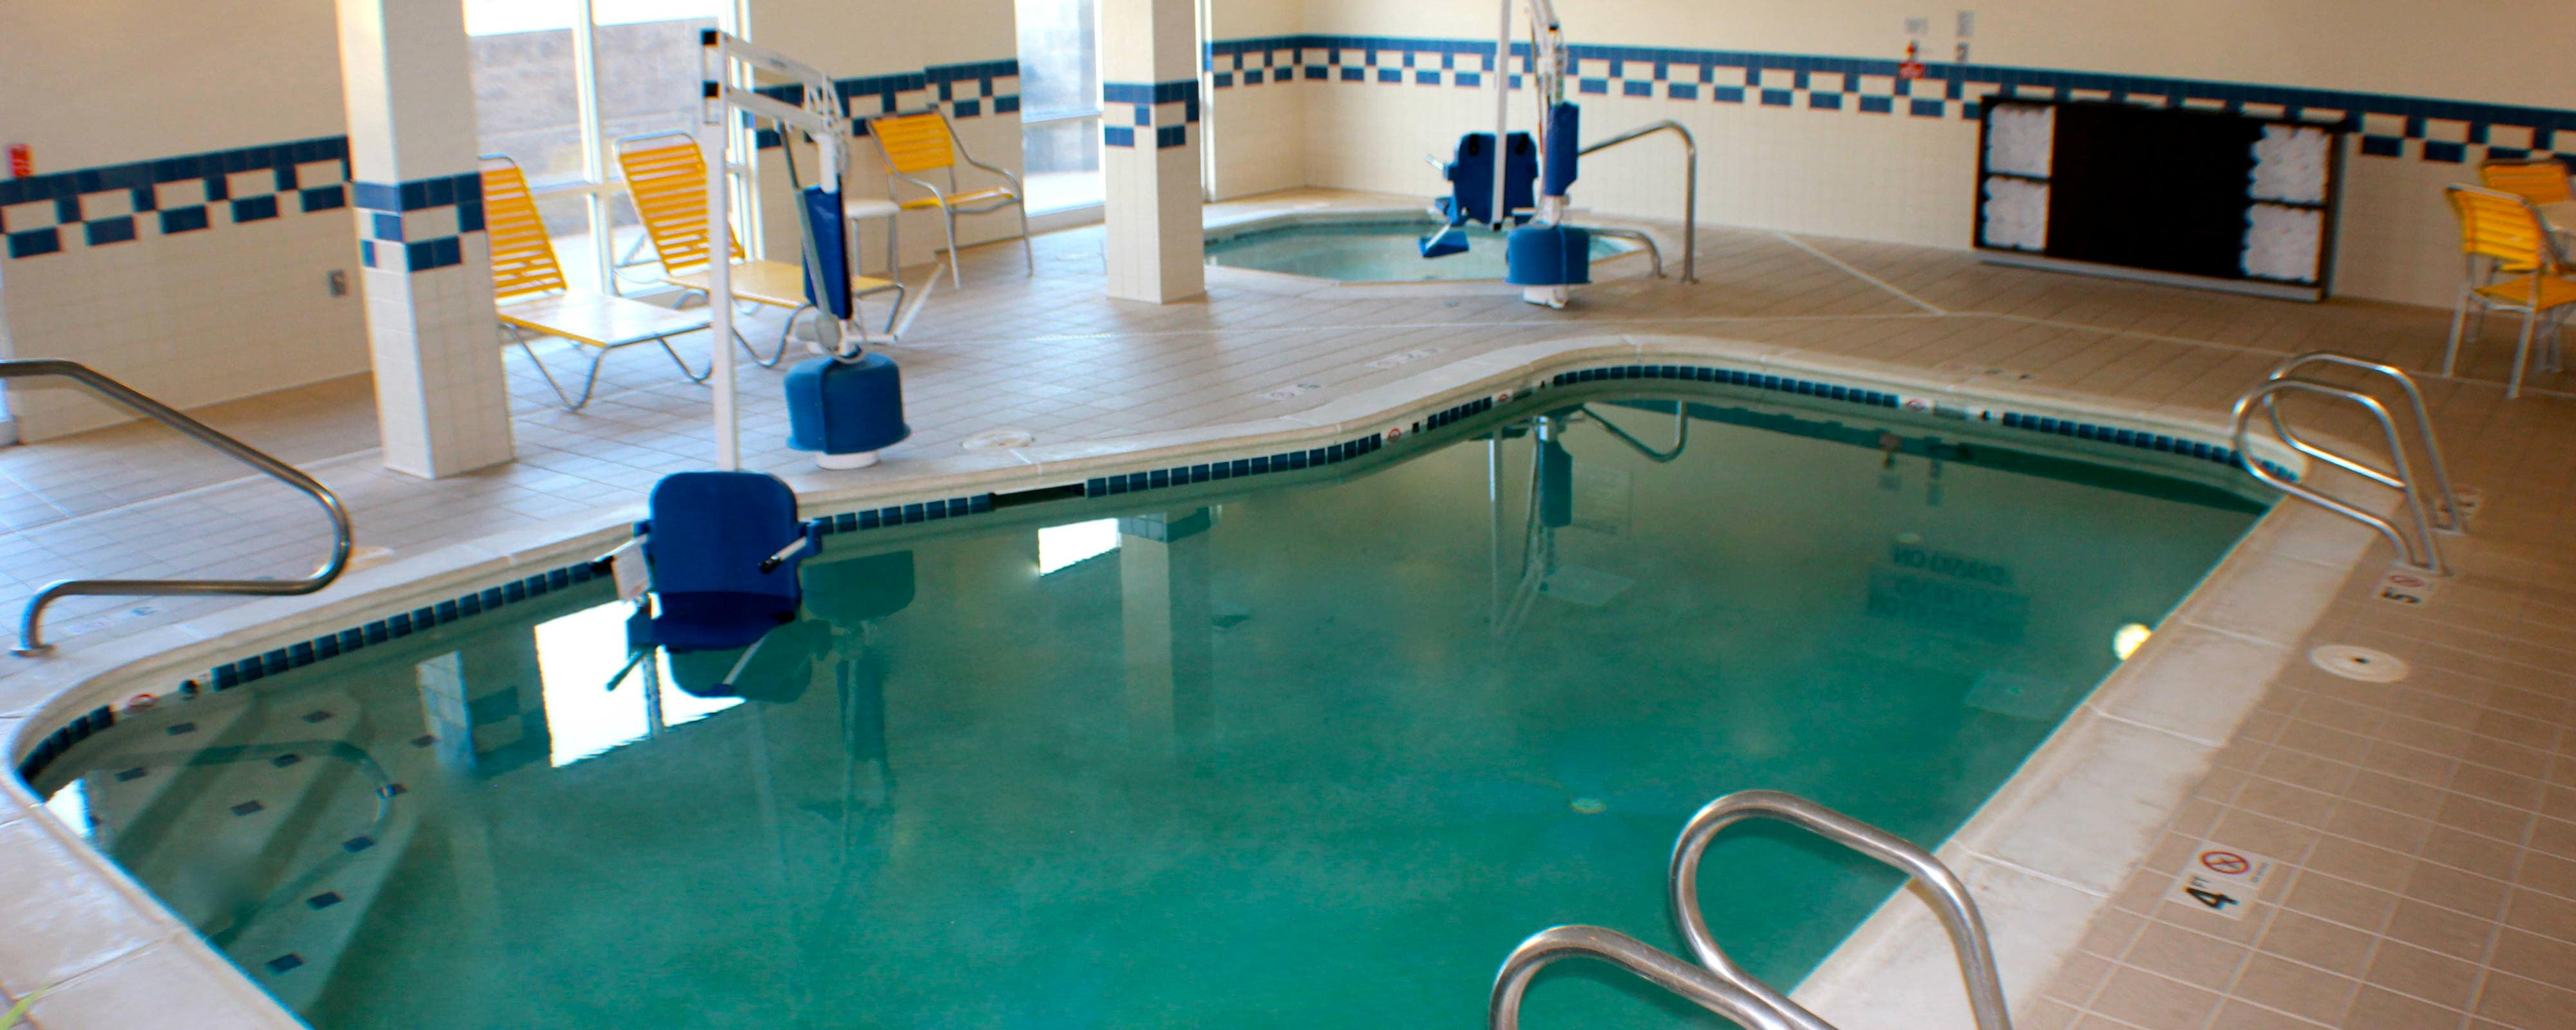 Piscina del Fairfield Inn and Suites